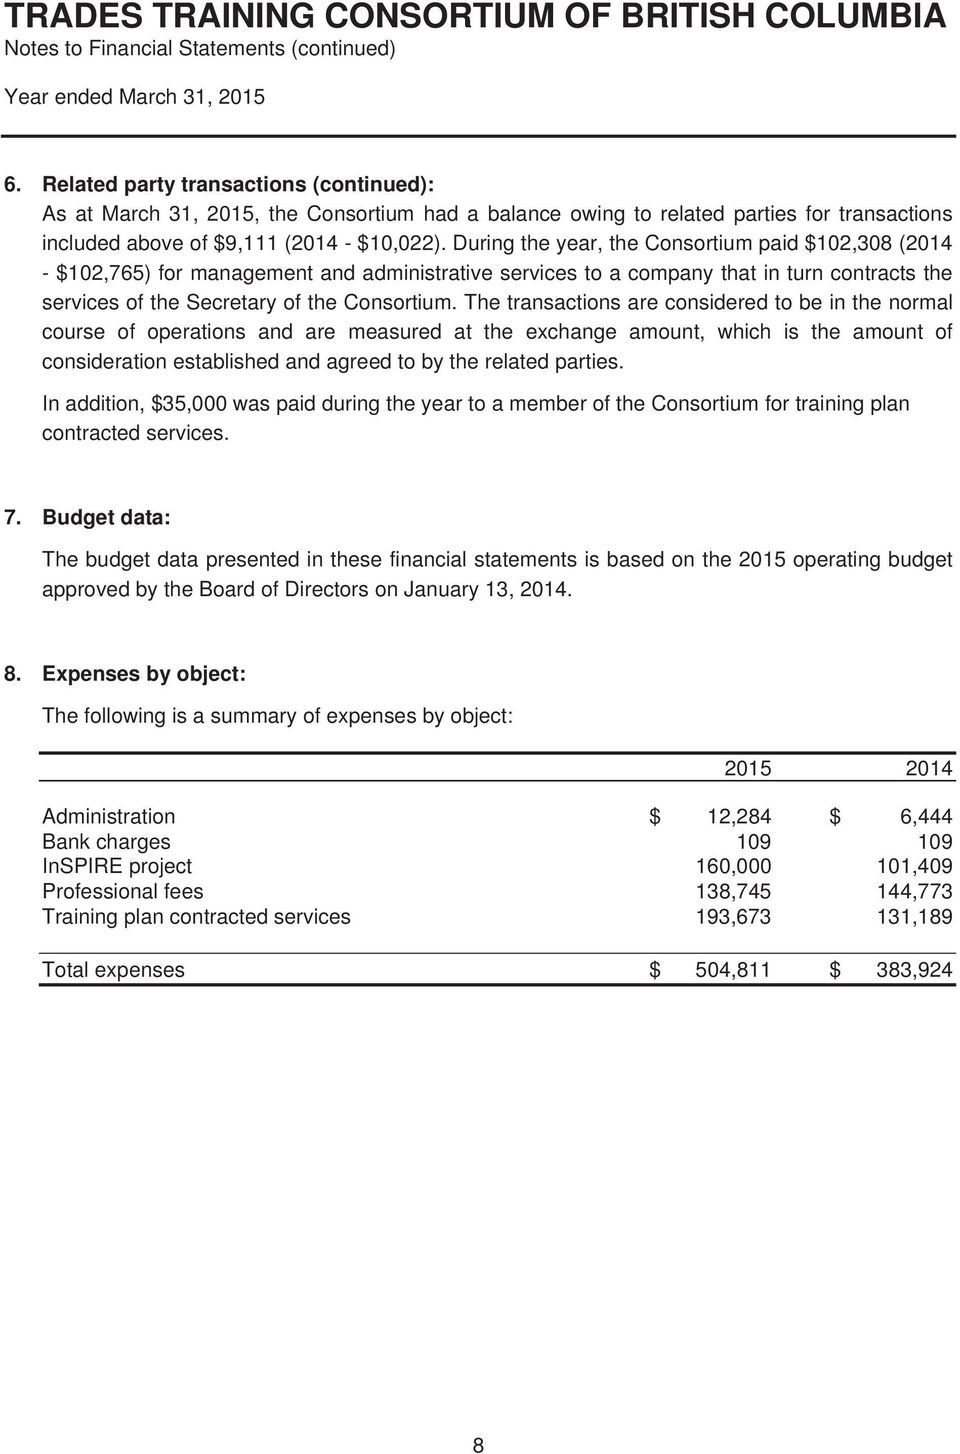 During the year, the Consortium paid $102,308 (2014 - $102,765) for management and administrative services to a company that in turn contracts the services of the Secretary of the Consortium.